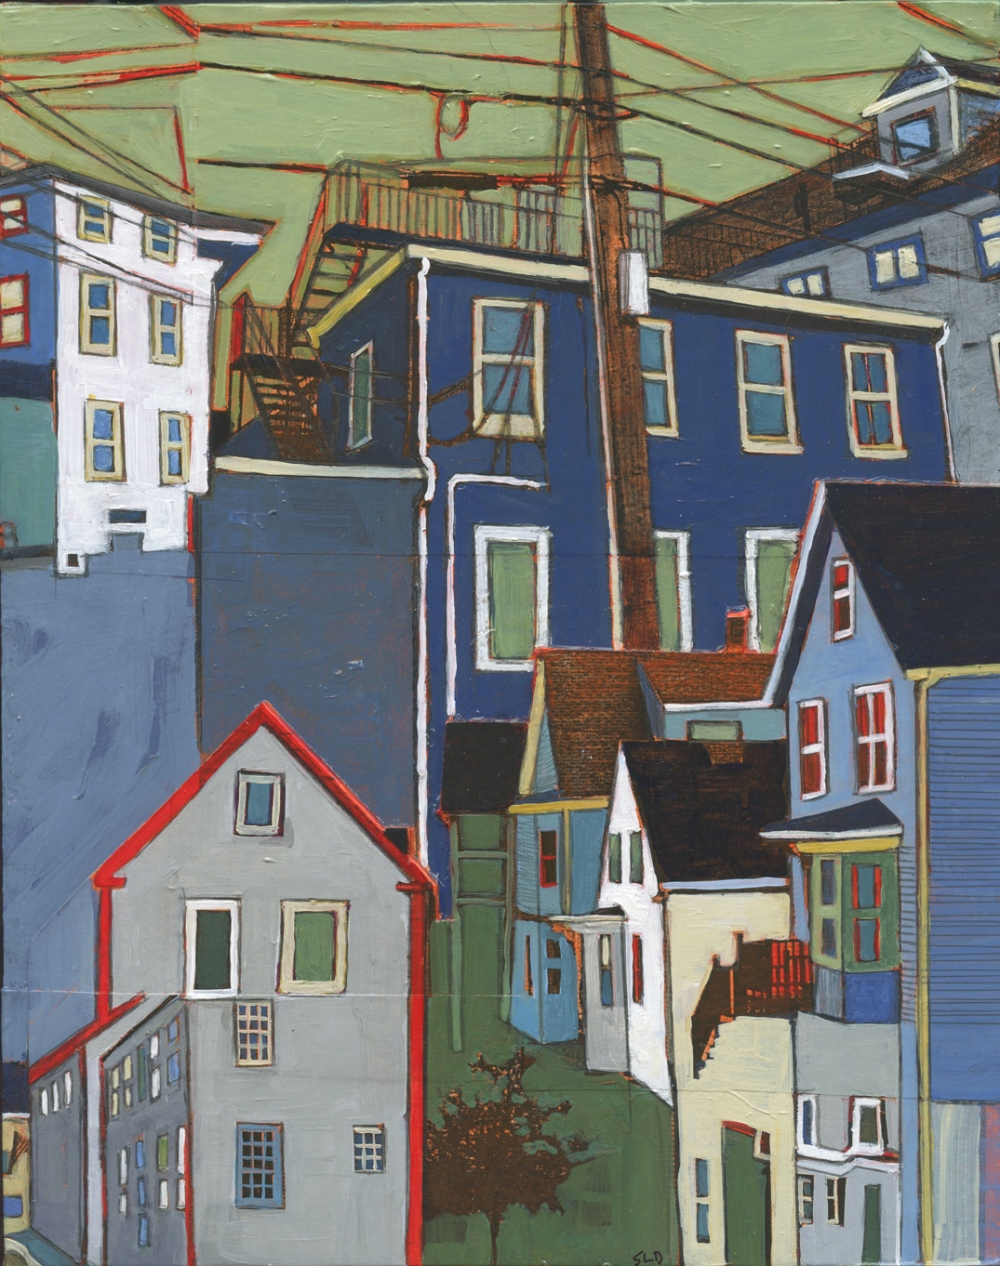 Stacey_Durand_Penhollow_and_Bartlett_Streets-2013